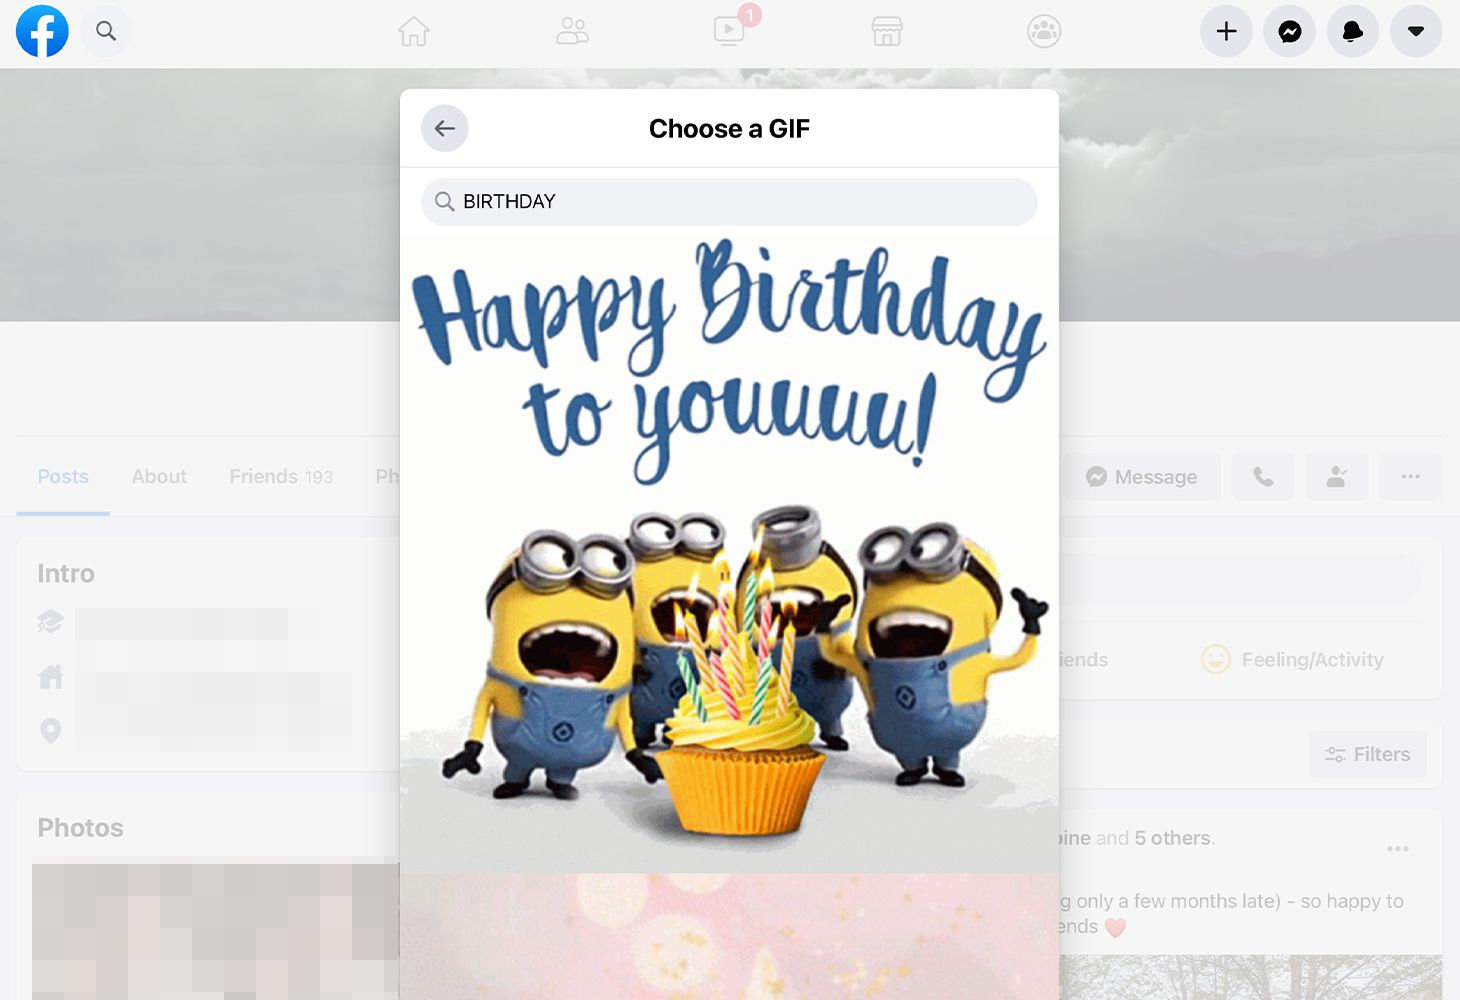 How To Send Birthday Cards On Facebook